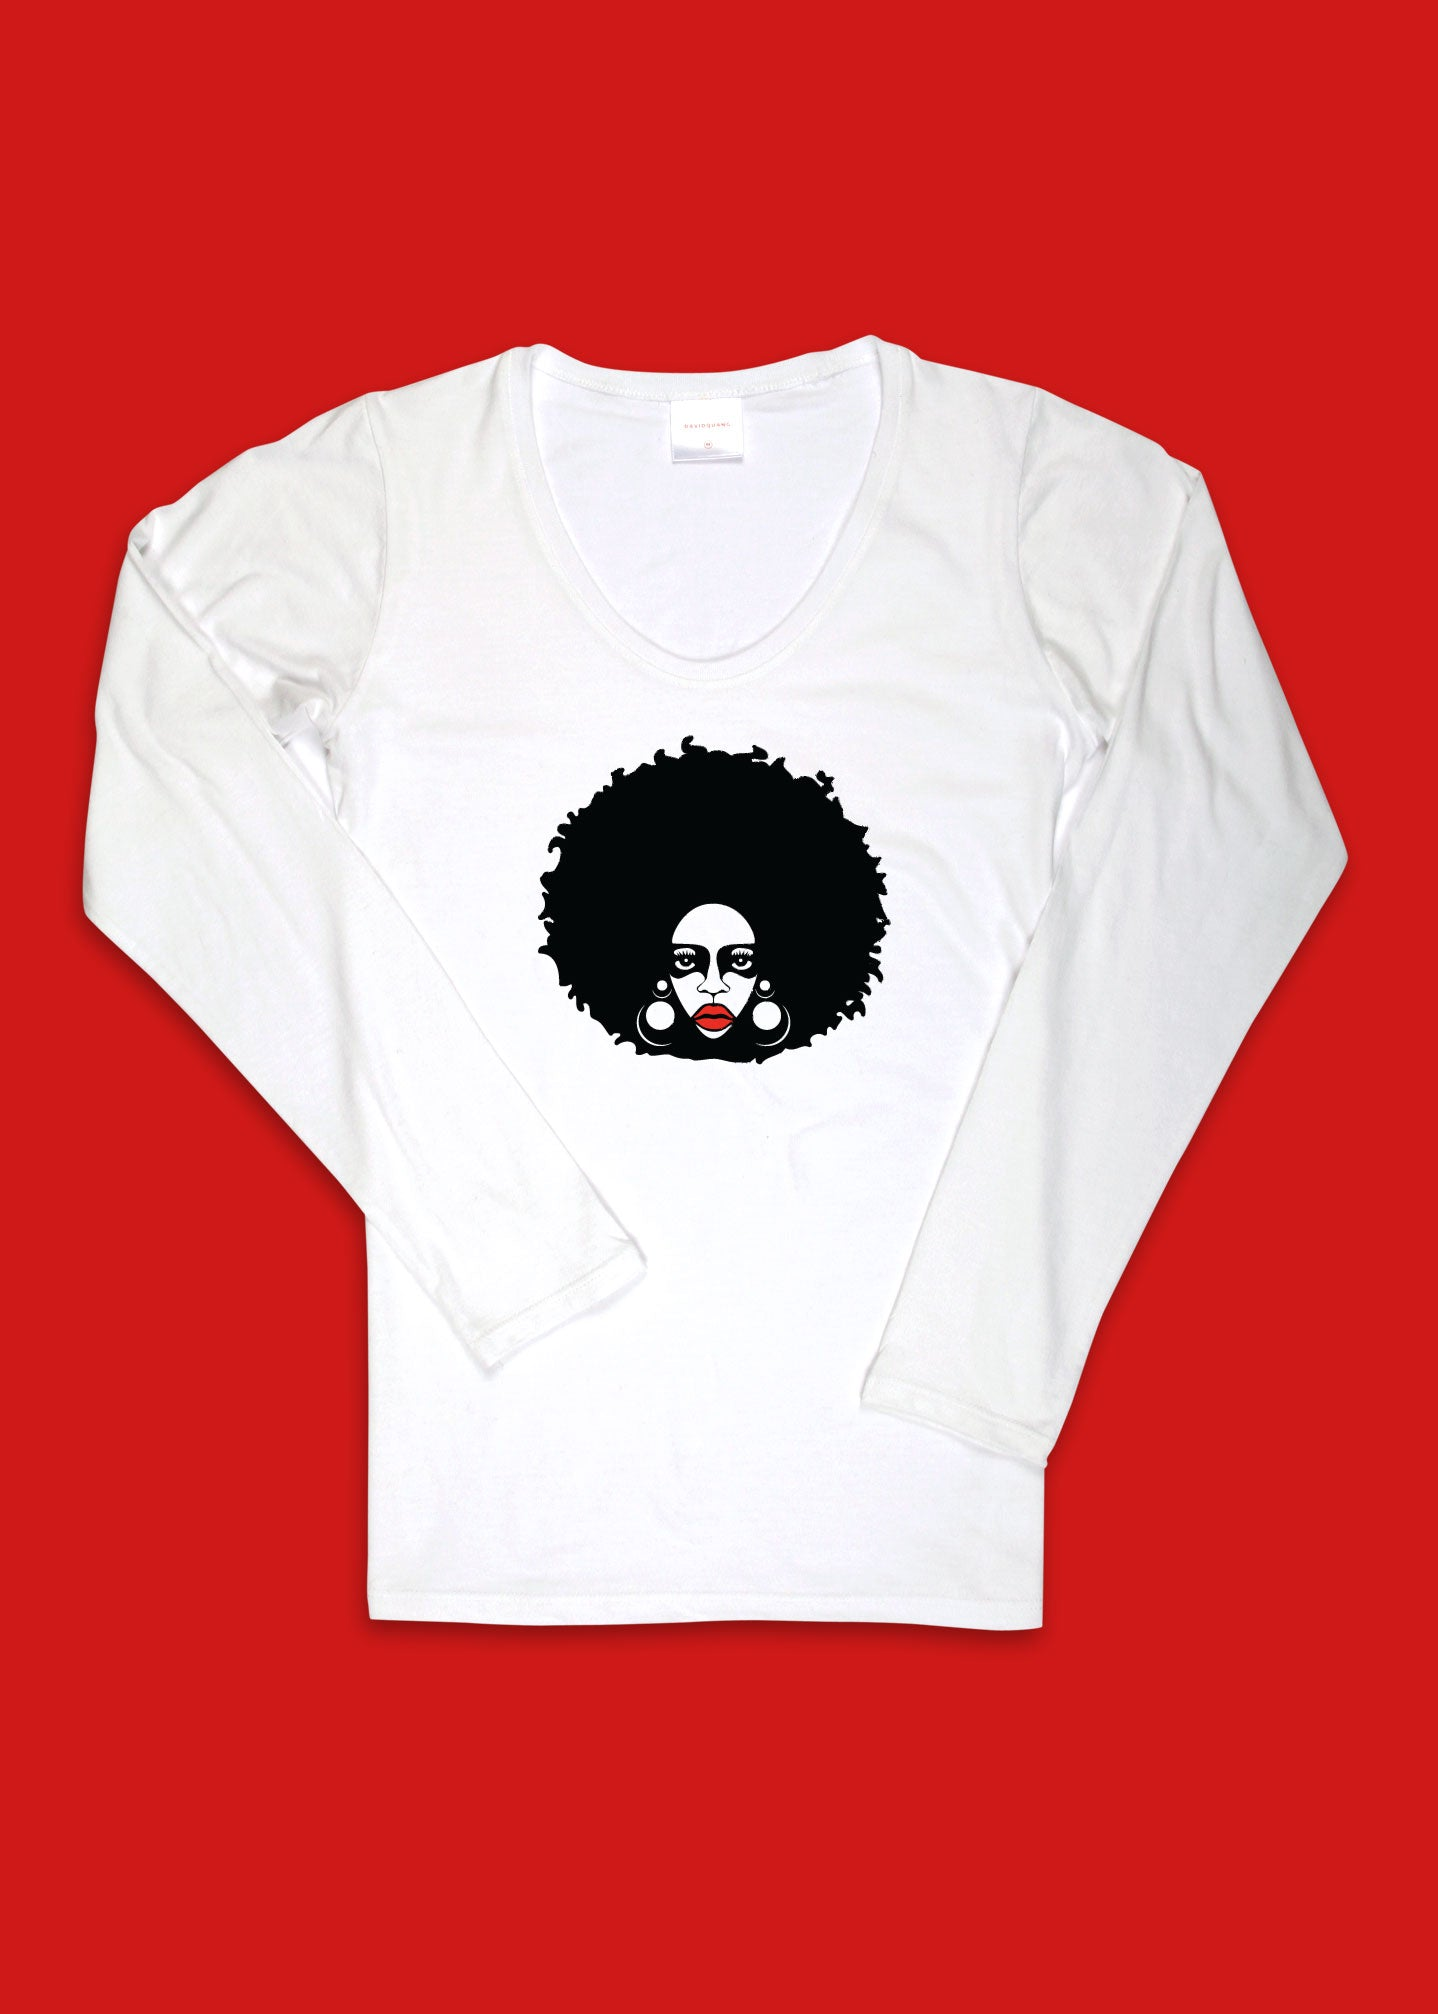 Women's Long Sleeve Scoop Neck T-Shirt with Afro Woman Print